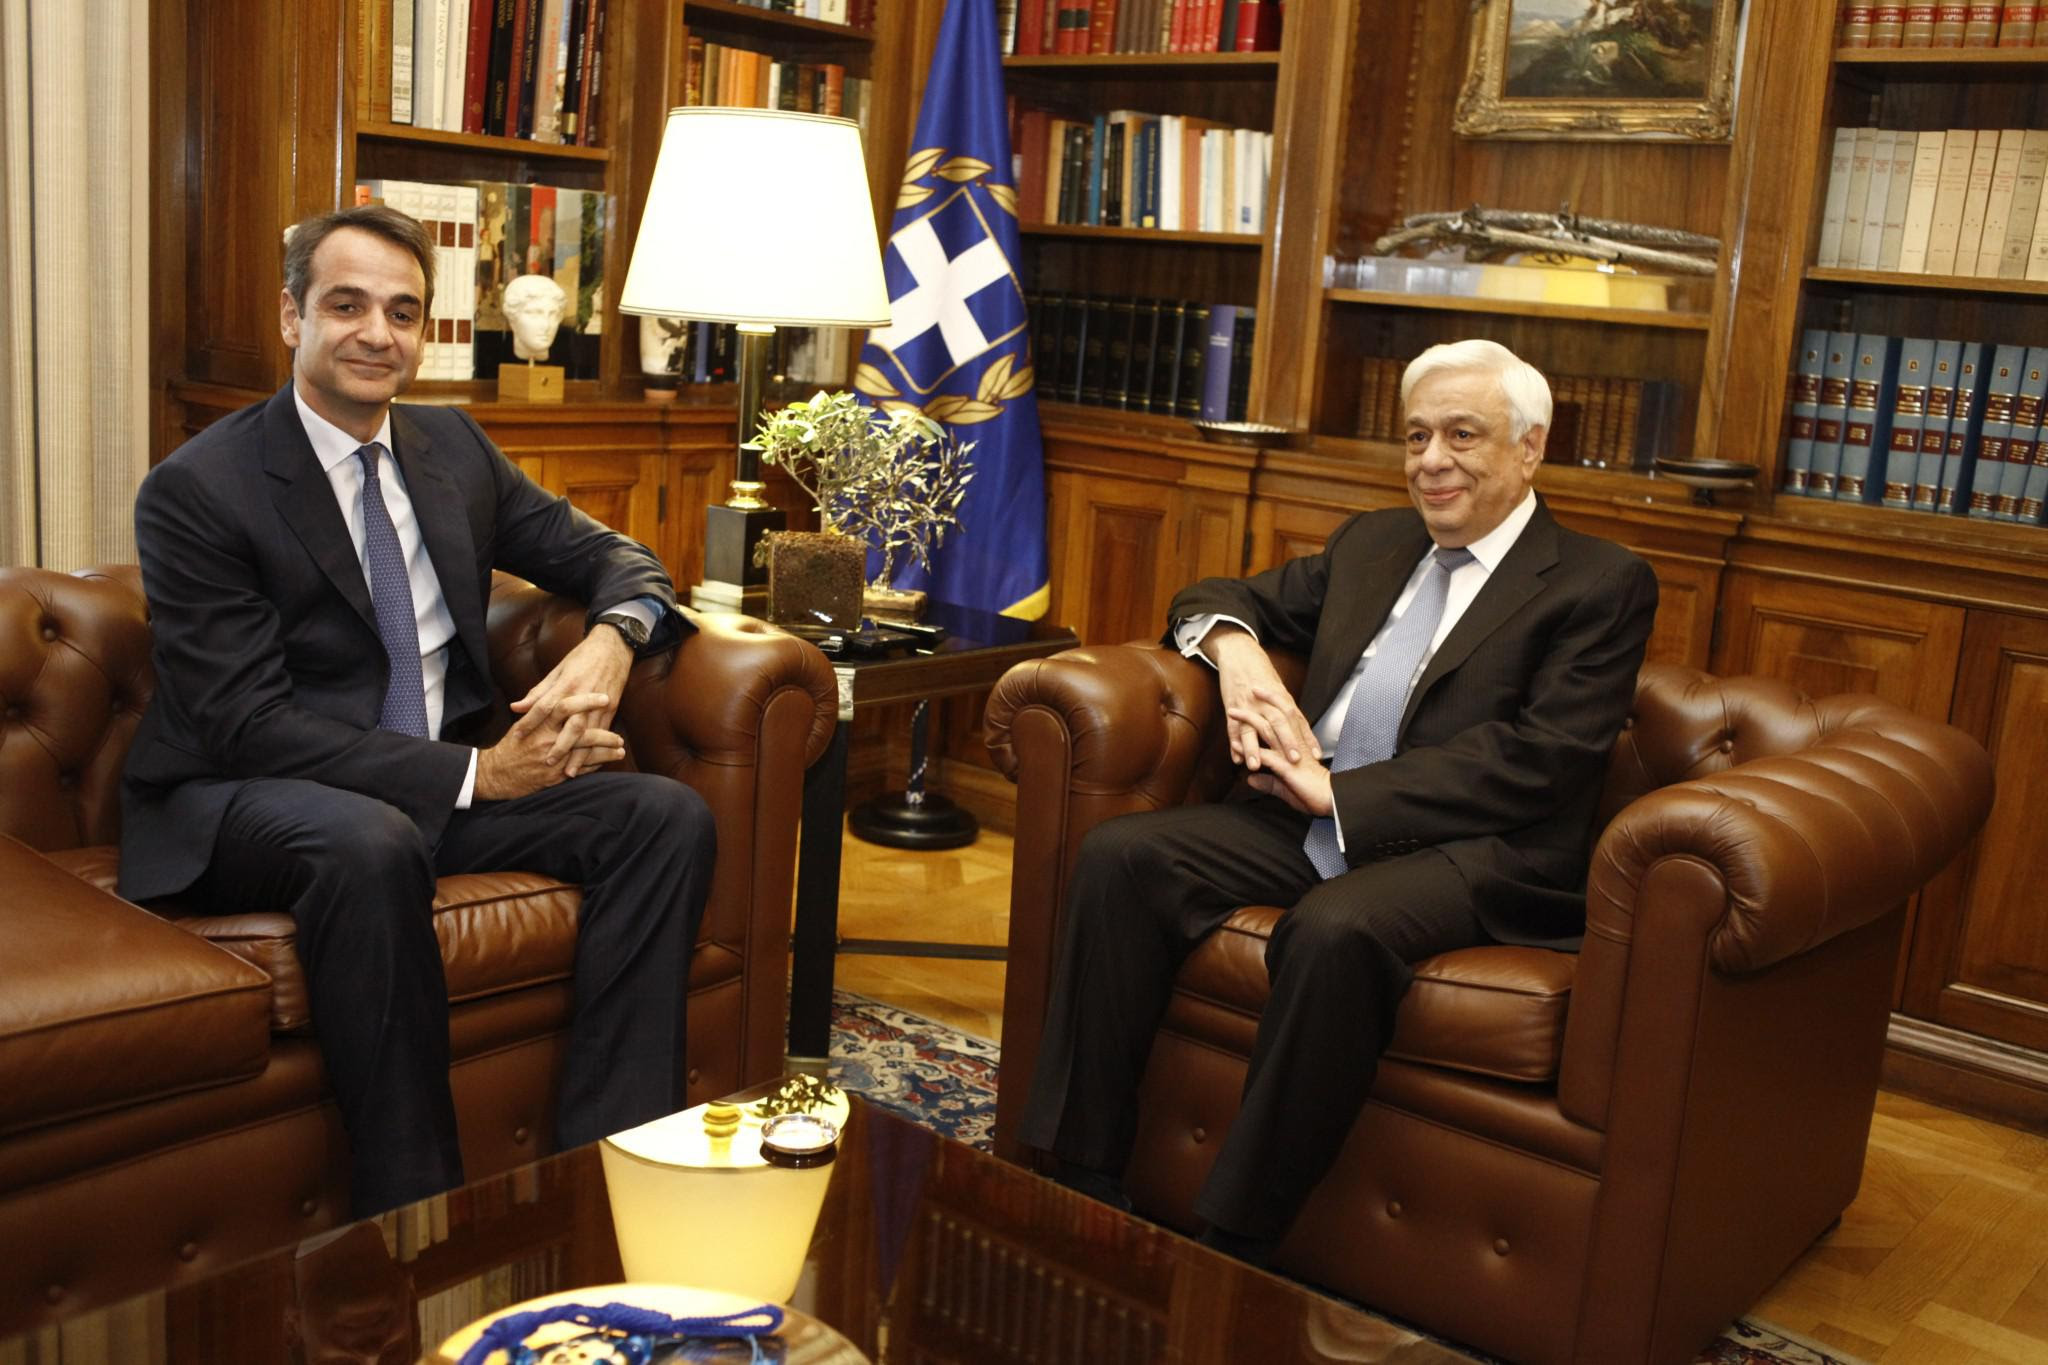 http://www.eleftherostypos.gr/wp-content/uploads/2016/10/mitsotakis-pavlopoulos-1300-1.jpg